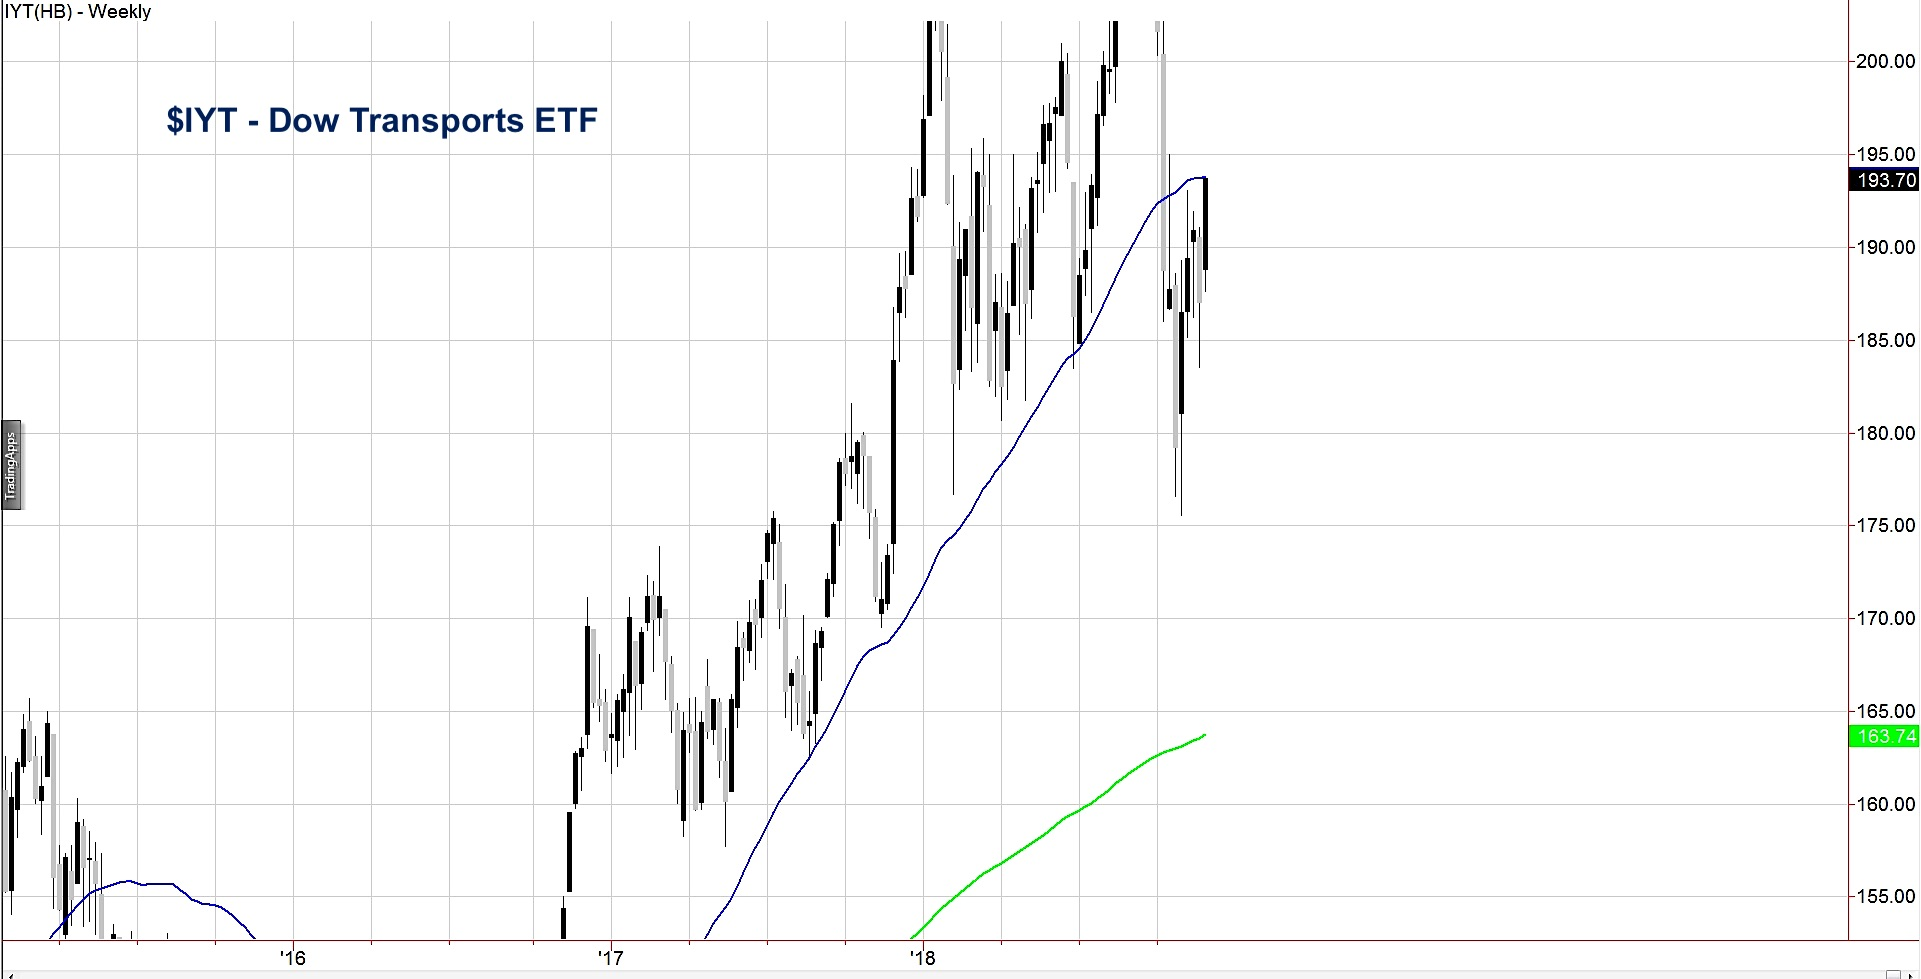 transportation etf iyt investing outlook chart big price level test